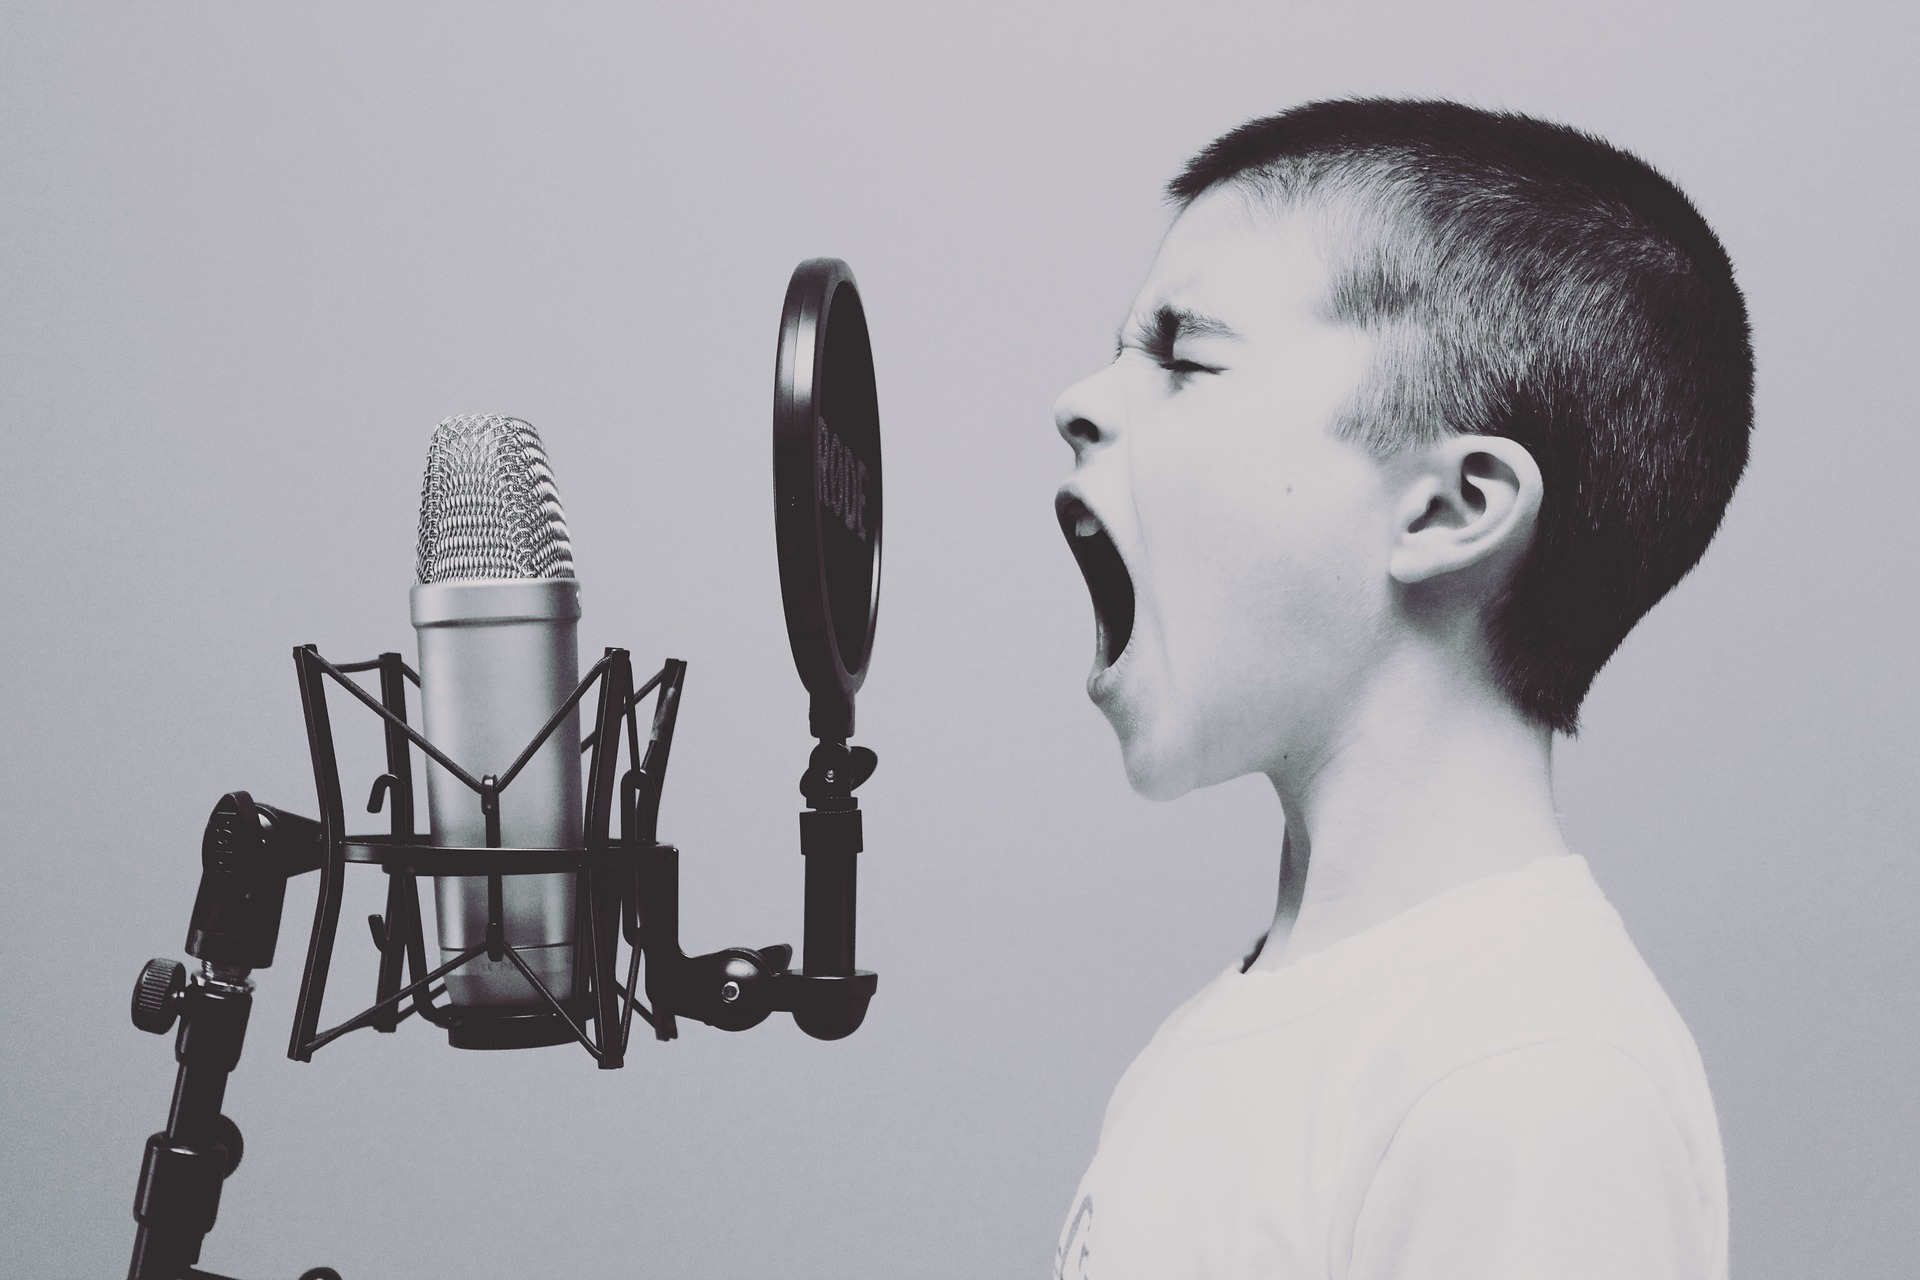 Image is black and white with a boy's profle screaming into a microphone